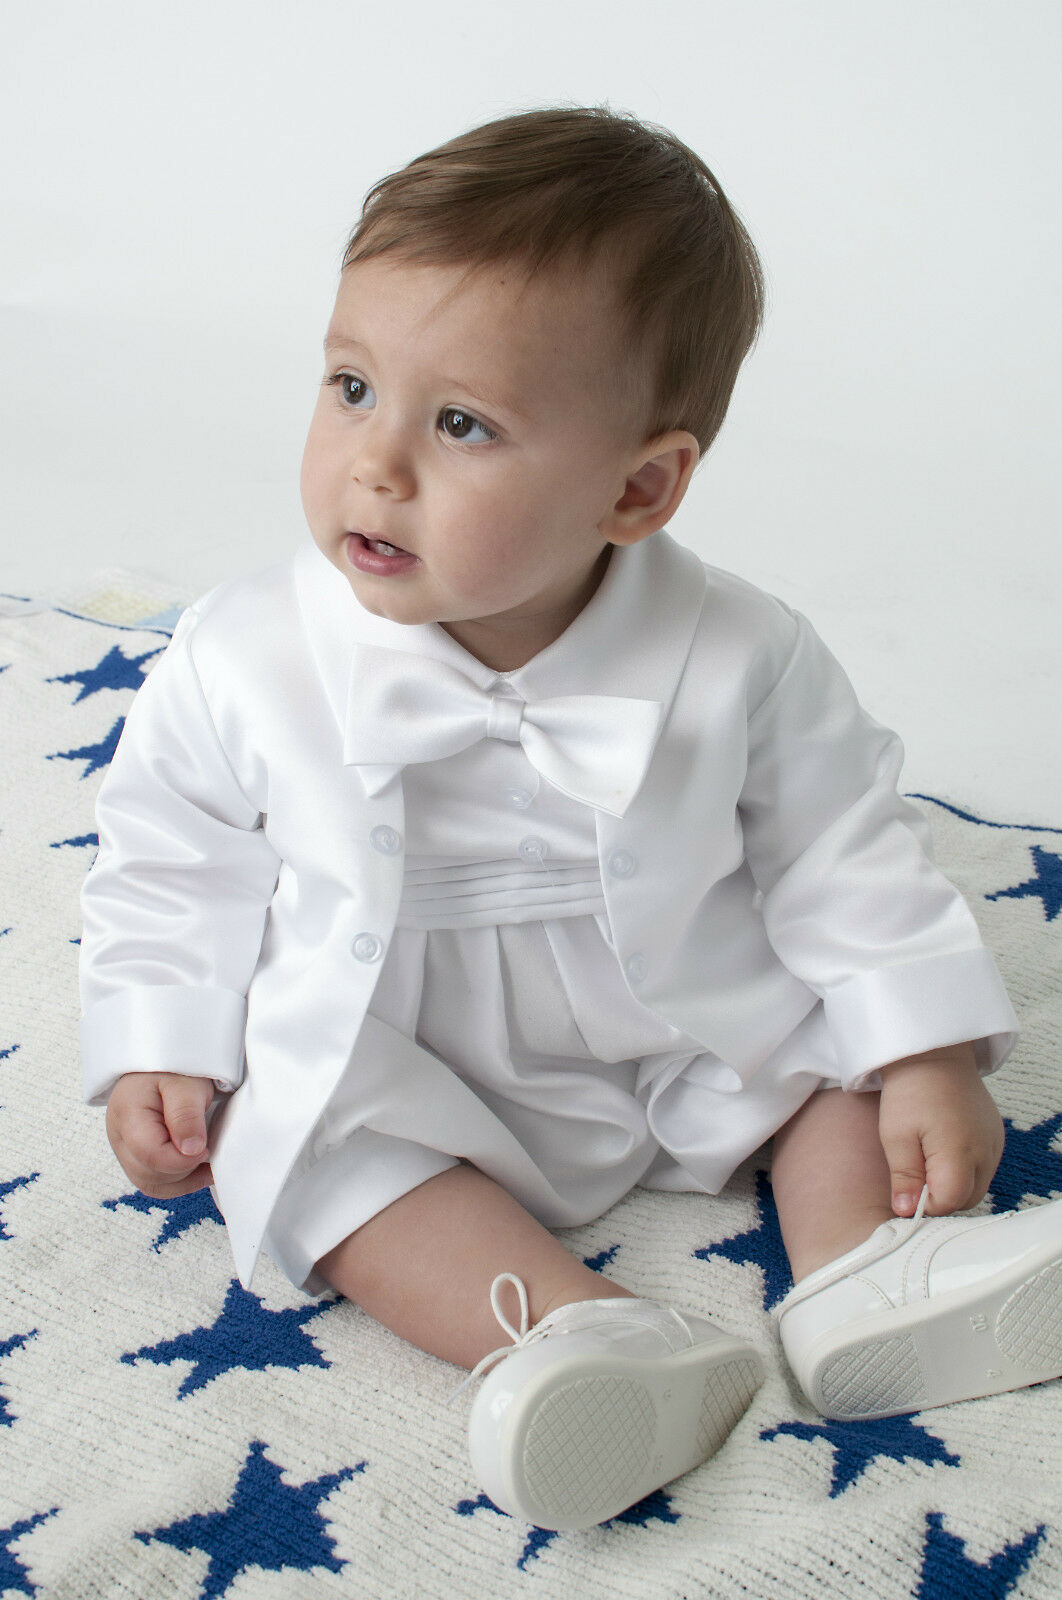 Find great deals on eBay for baby boy romper. Shop with confidence.